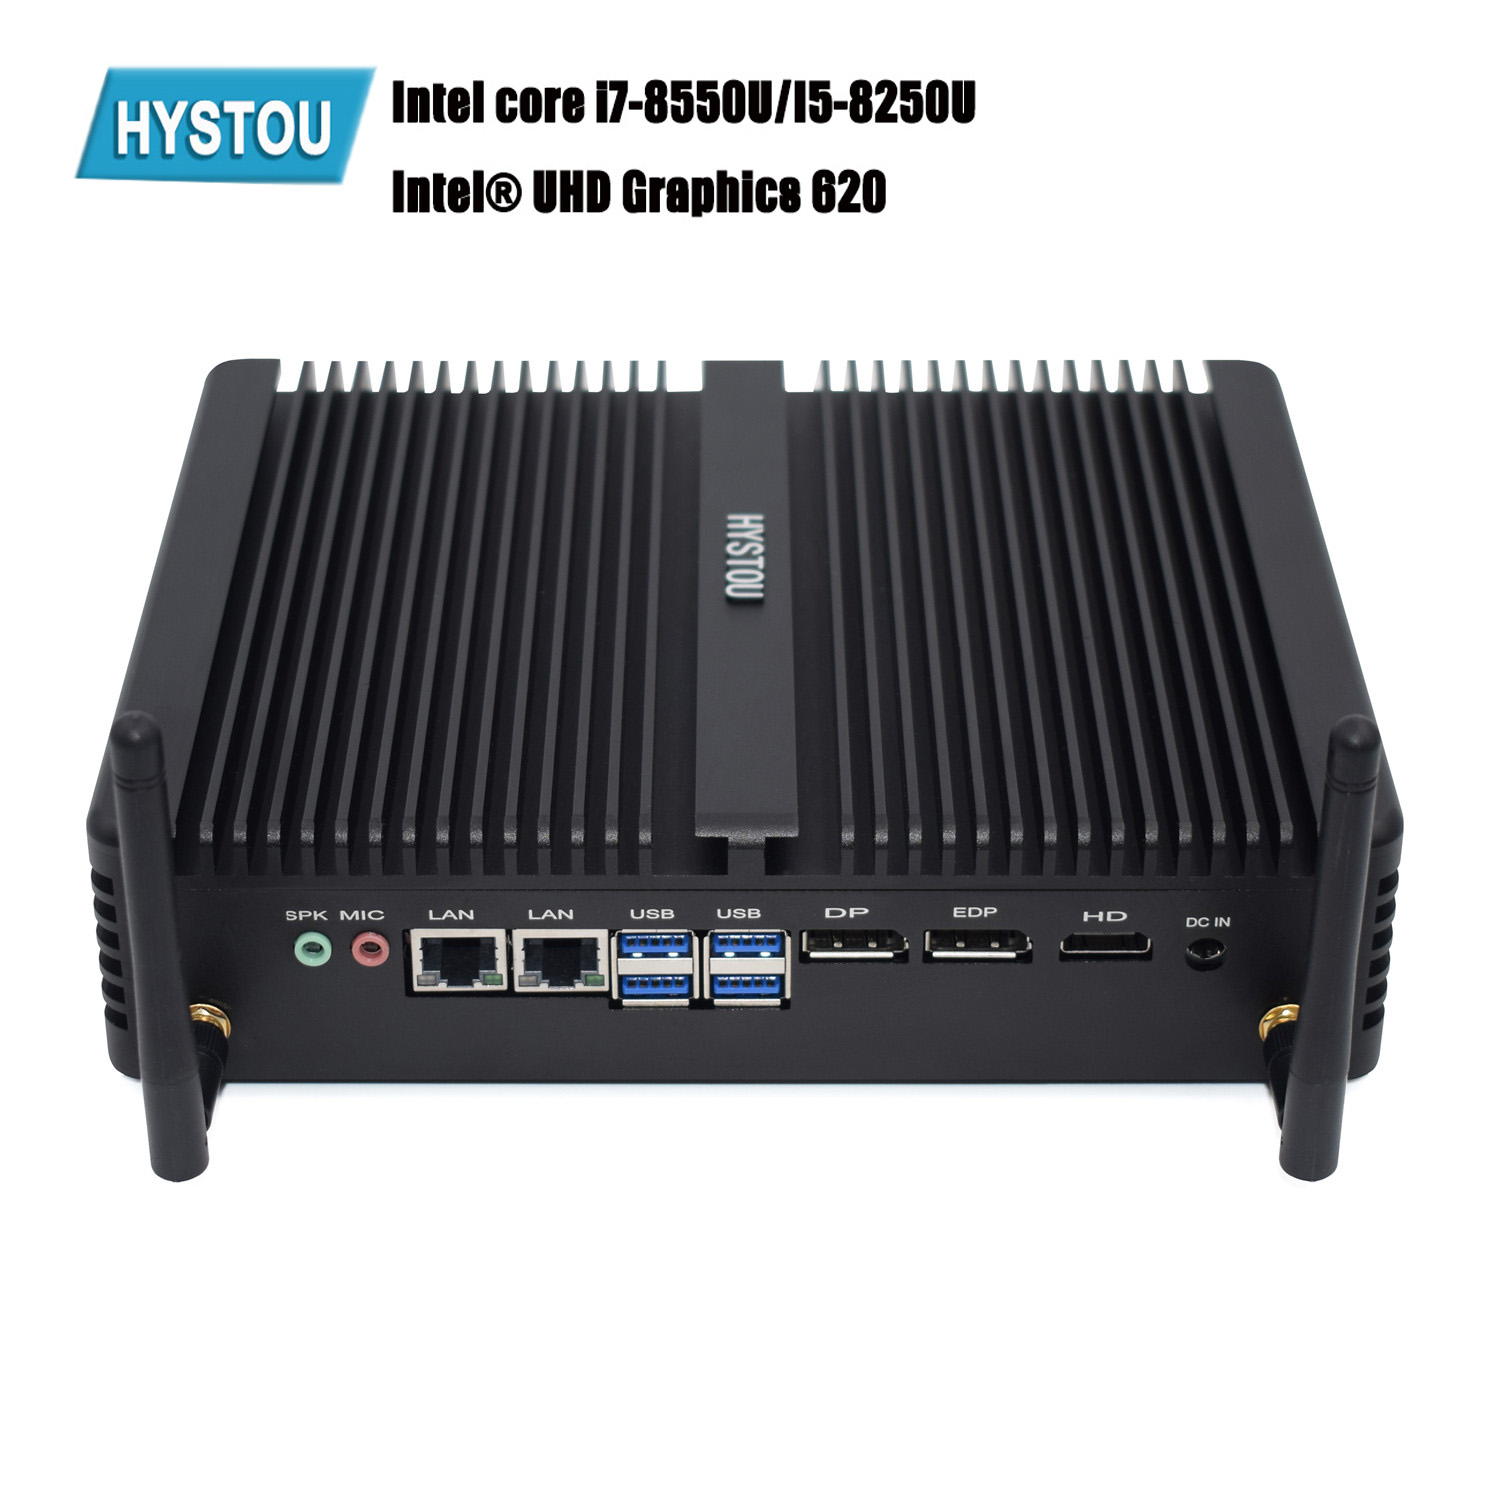 Hystou M2 WIFI 8th Intel Core Industrial Fanless Mini PC i5 8250U i7 8550U Windows 10 DDR4 4 USB 3.0 HDMI DP EDP 4K HTPC NUC image